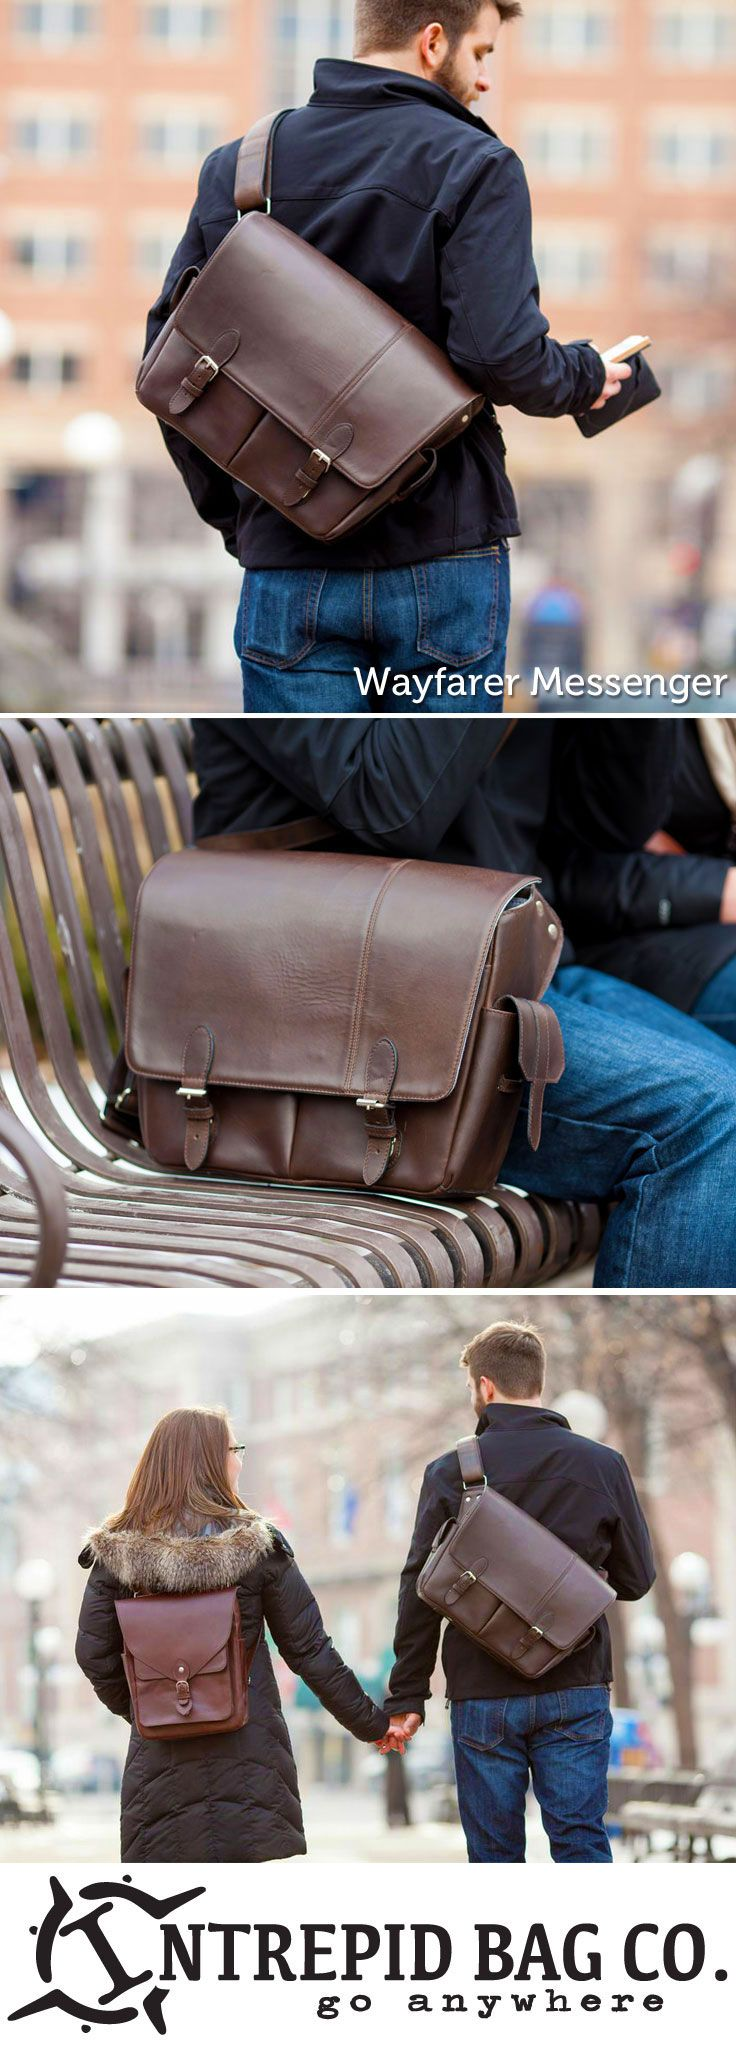 "The Wayfarer Messenger from the Intrepid Bag Co. Spacious and comfortable with room for a 15"" laptop, a hidden passport pocket, and much more! Available on Kickstarter now! www.IntrepidBags.com"